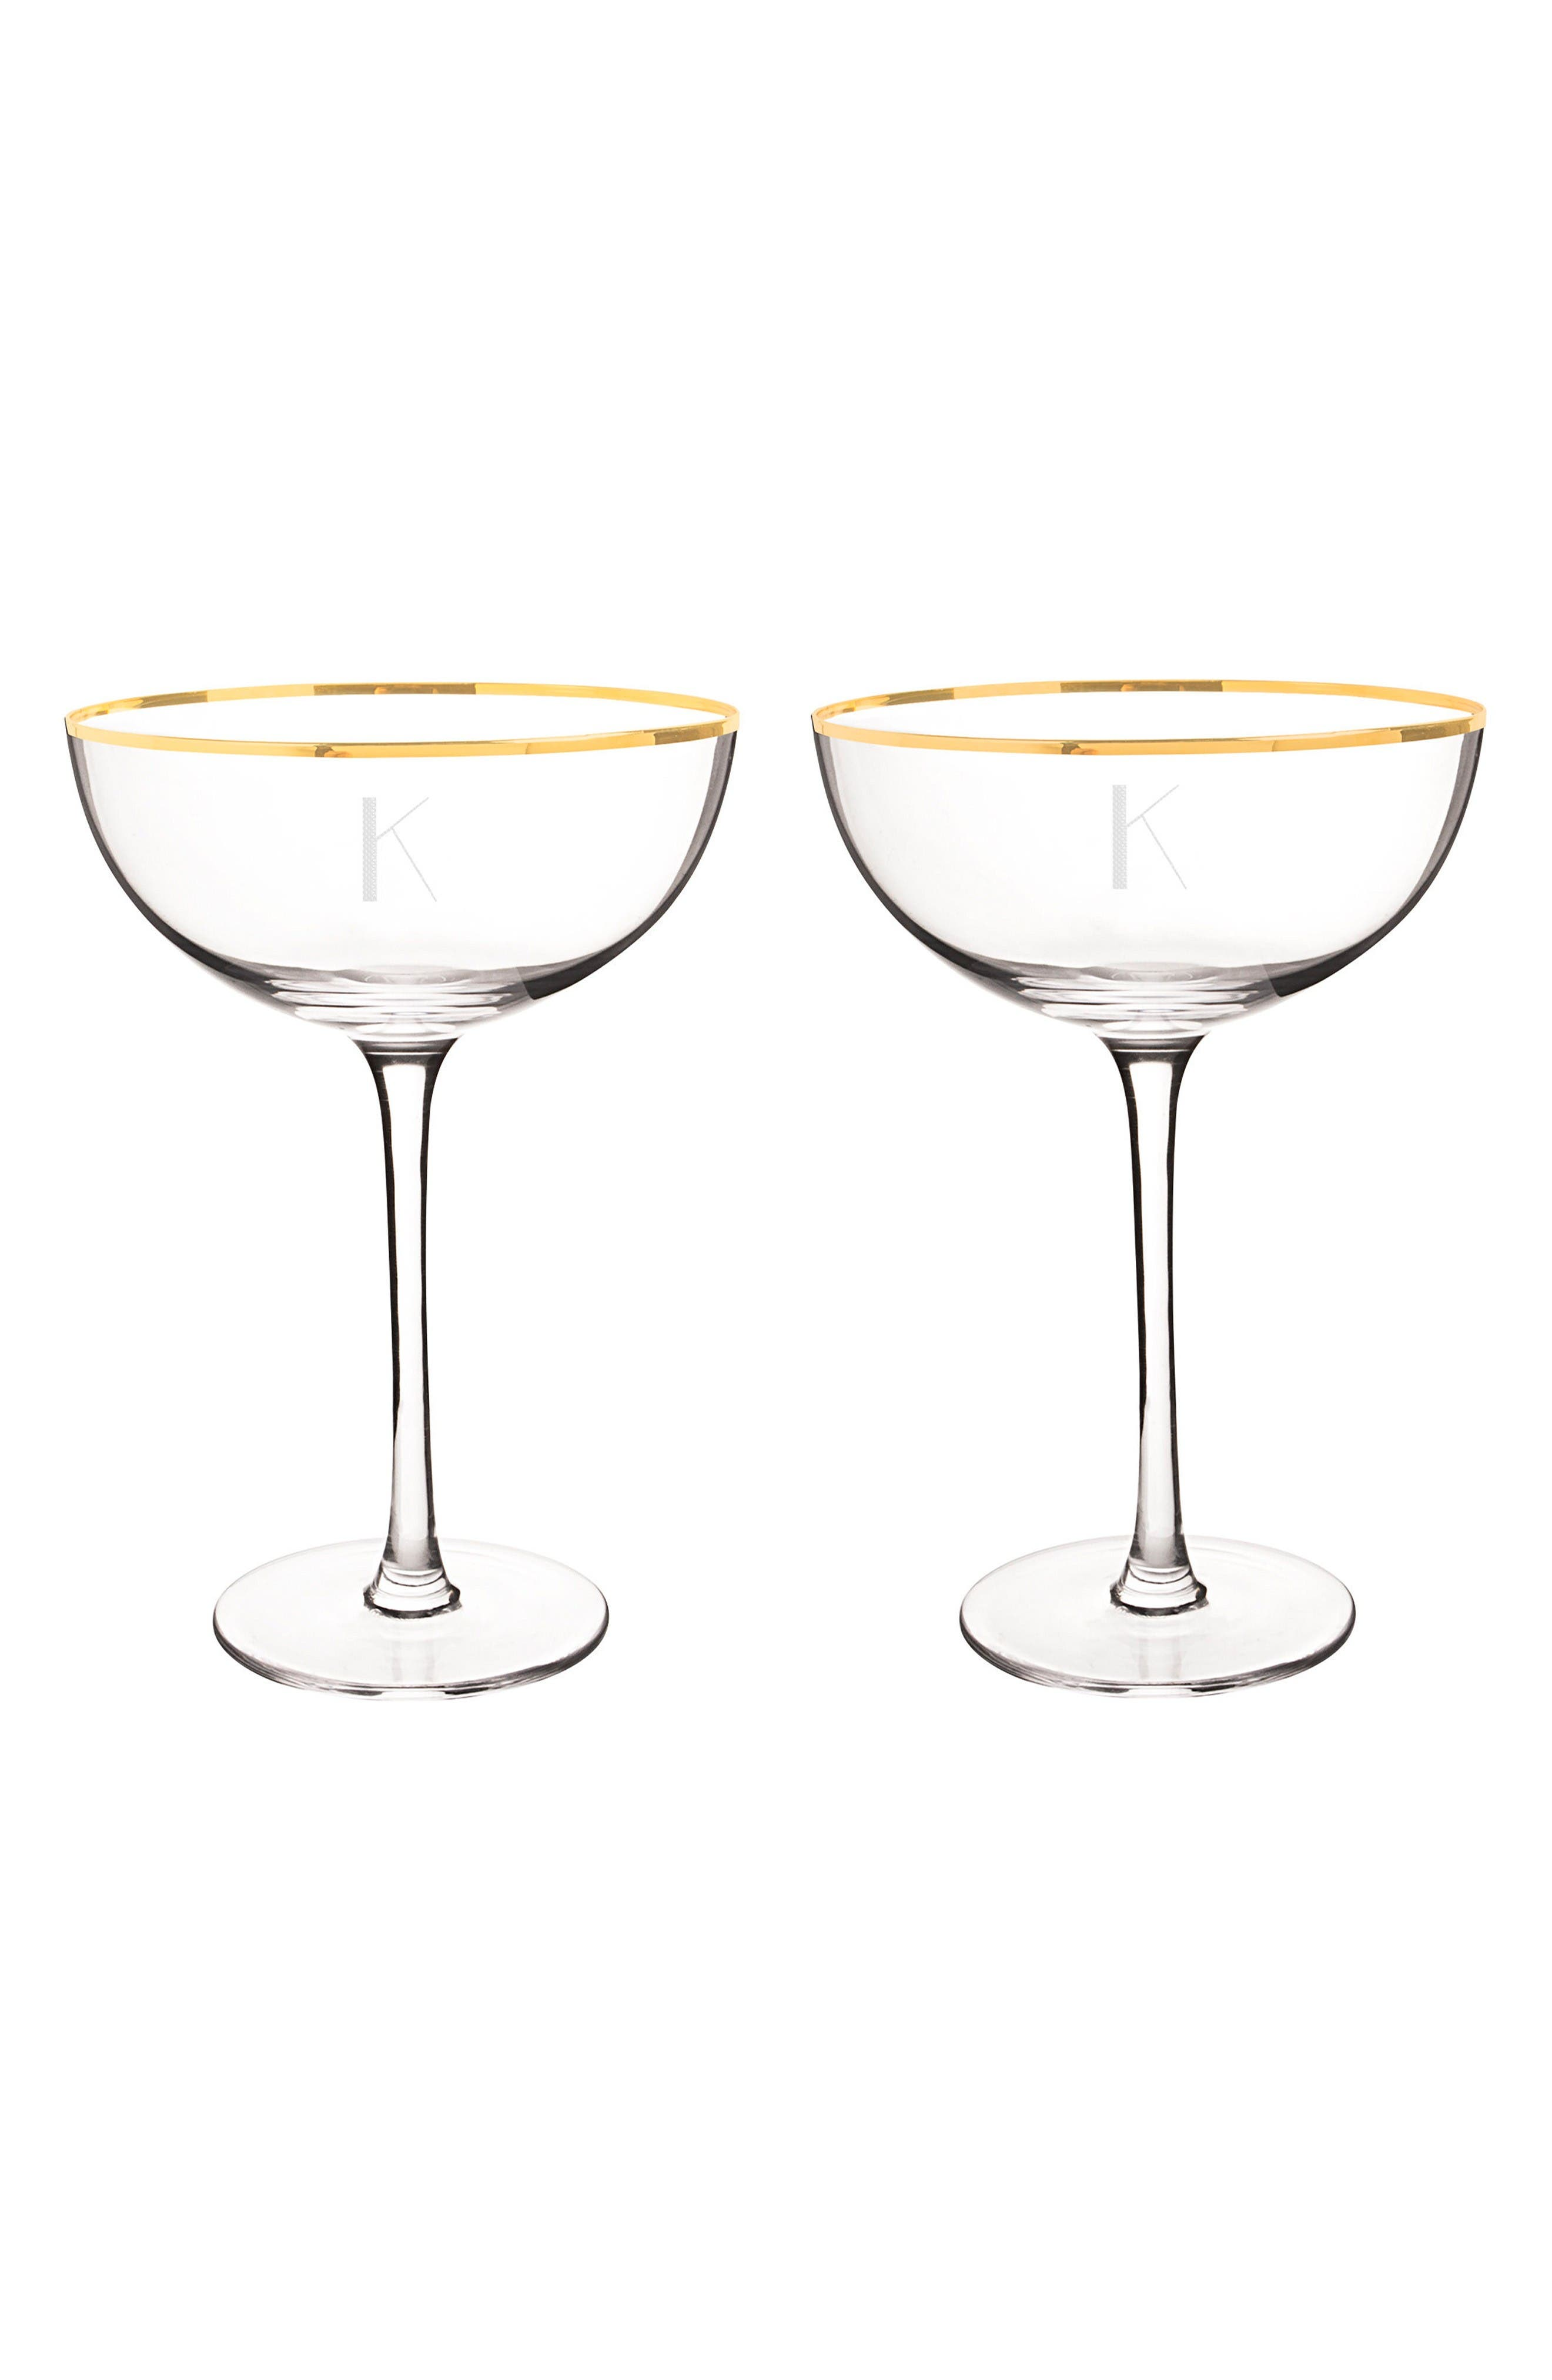 Main Image - Cathy's Concepts Set of 2 Gold Rim Monogram Champagne Flutes